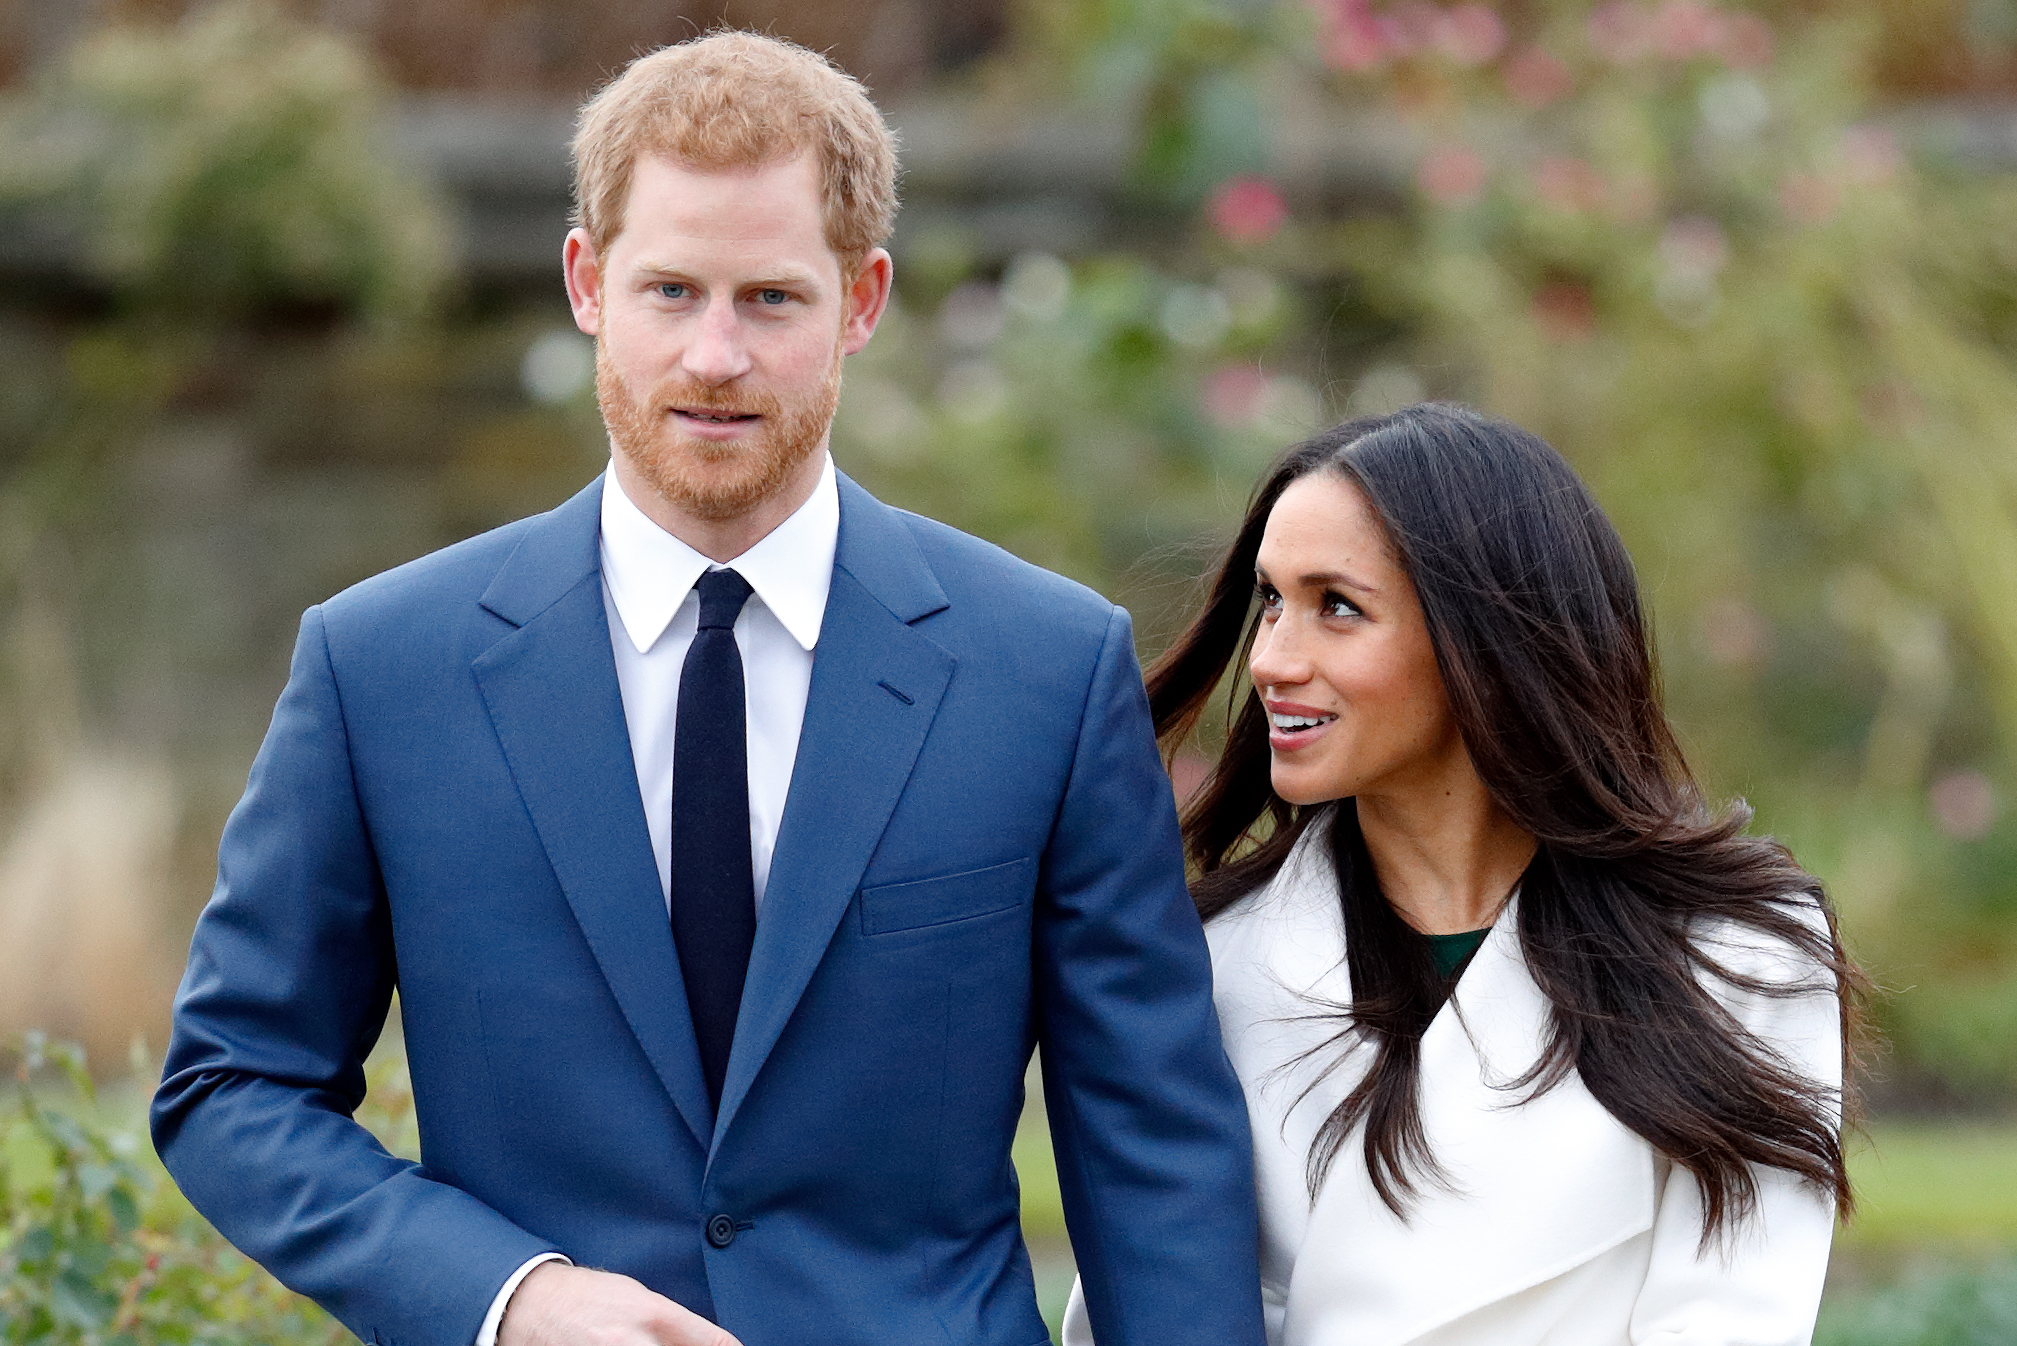 prince harry and meghan markle s wedding date the duo reveals details https www lifeandstylemag com posts prince harry meghan markle wedding date 147586